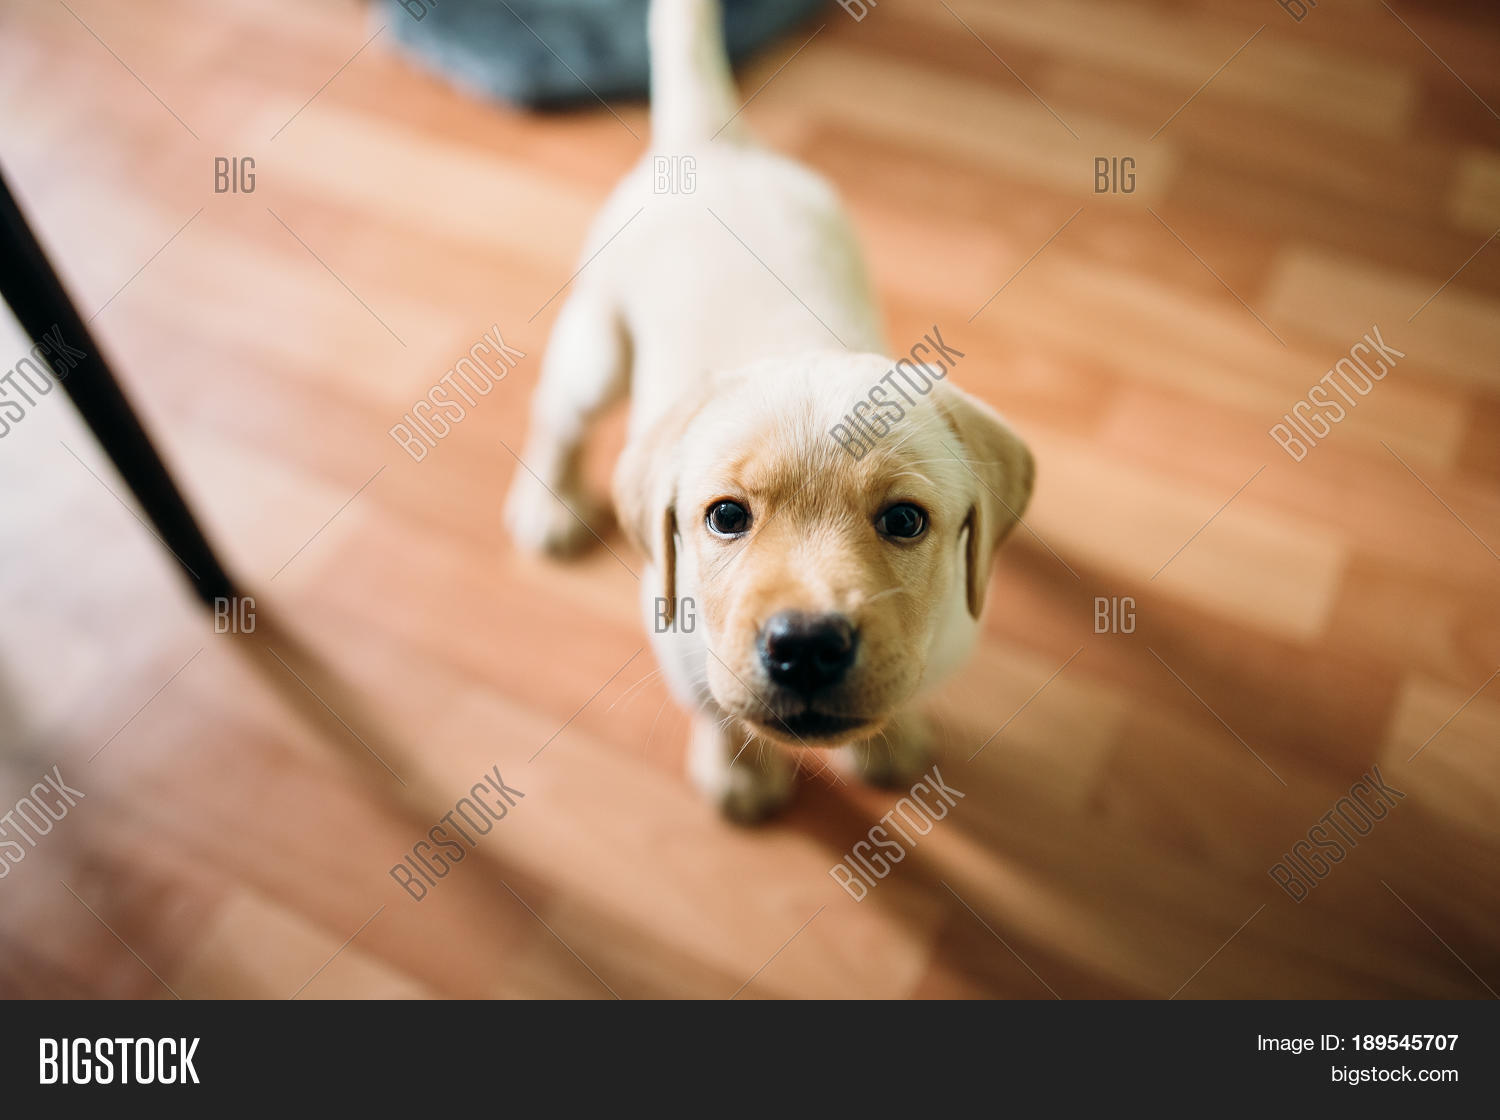 A Puppy Of Labrador Retriever And Golden Plays At Home Concept Dog